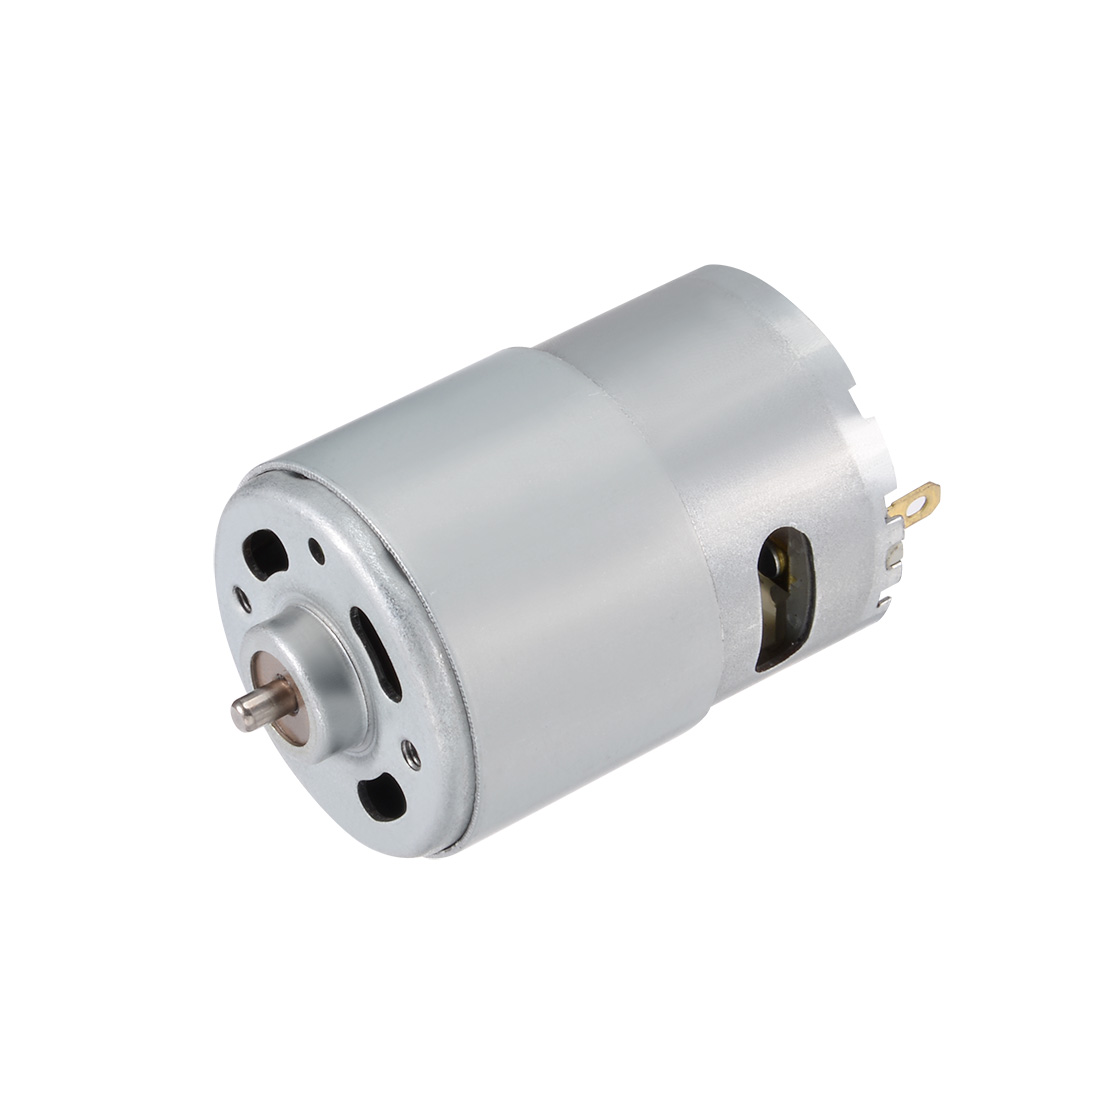 Small Motor DC 24V 9000RPM High Speed Motor f DIY Hobby Toy Cars Remote Control